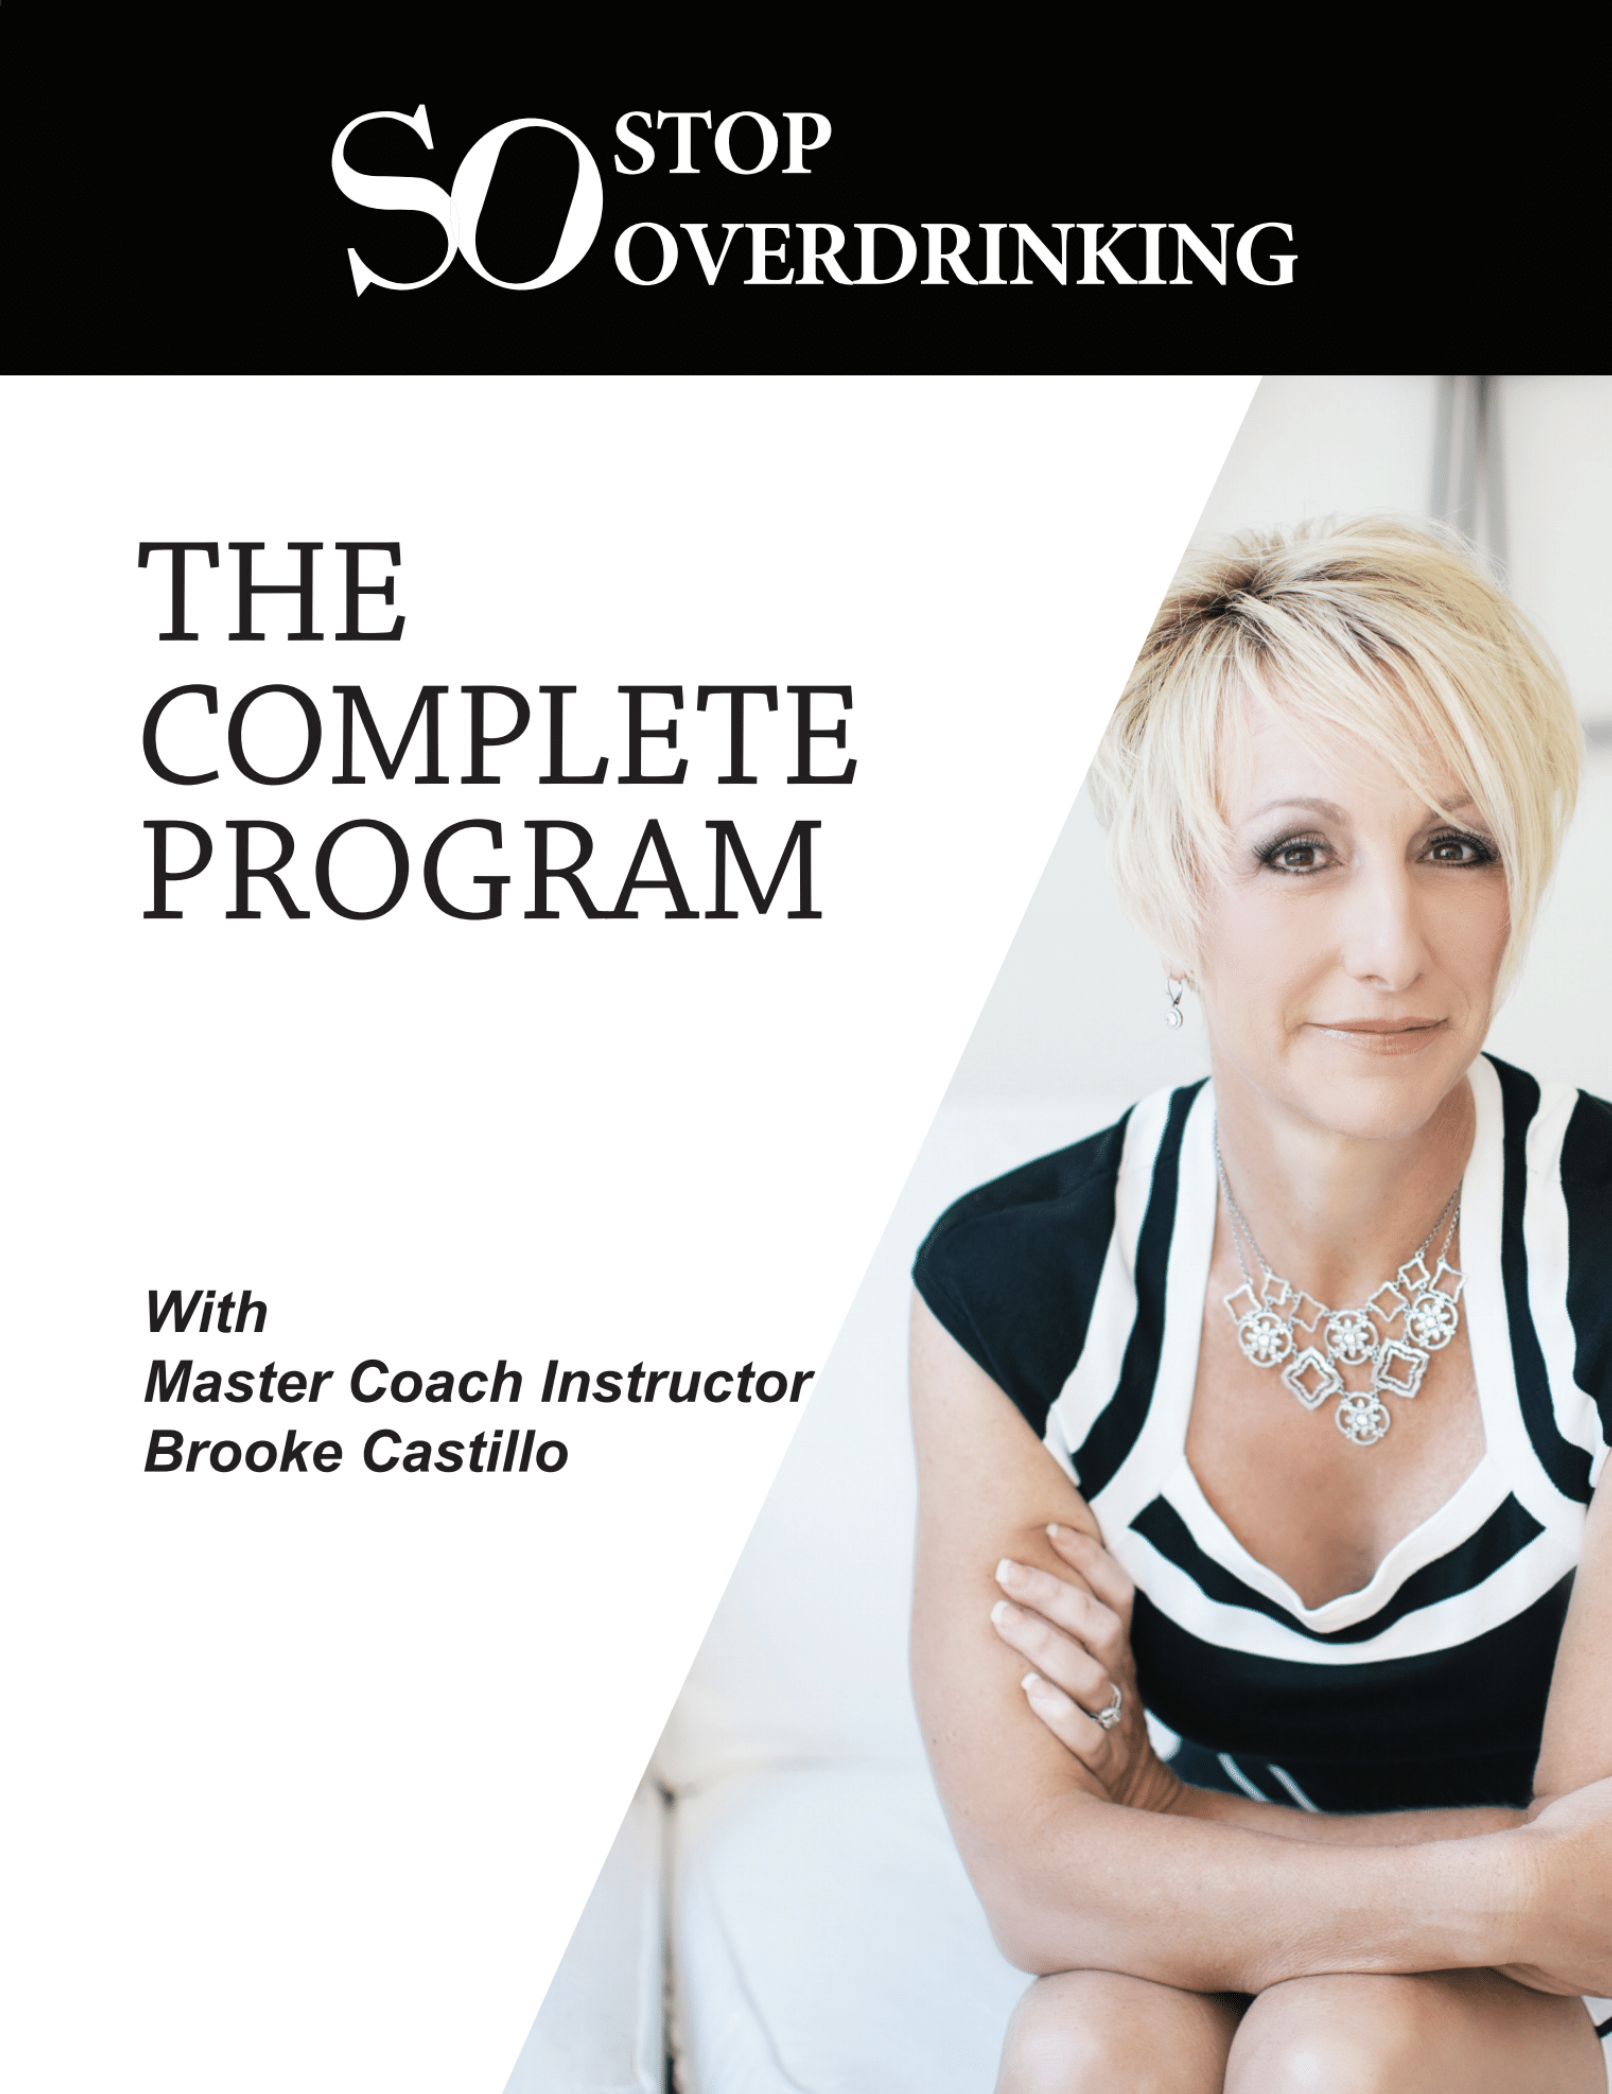 Stop Overdrinking Book The life coach school, Books, New